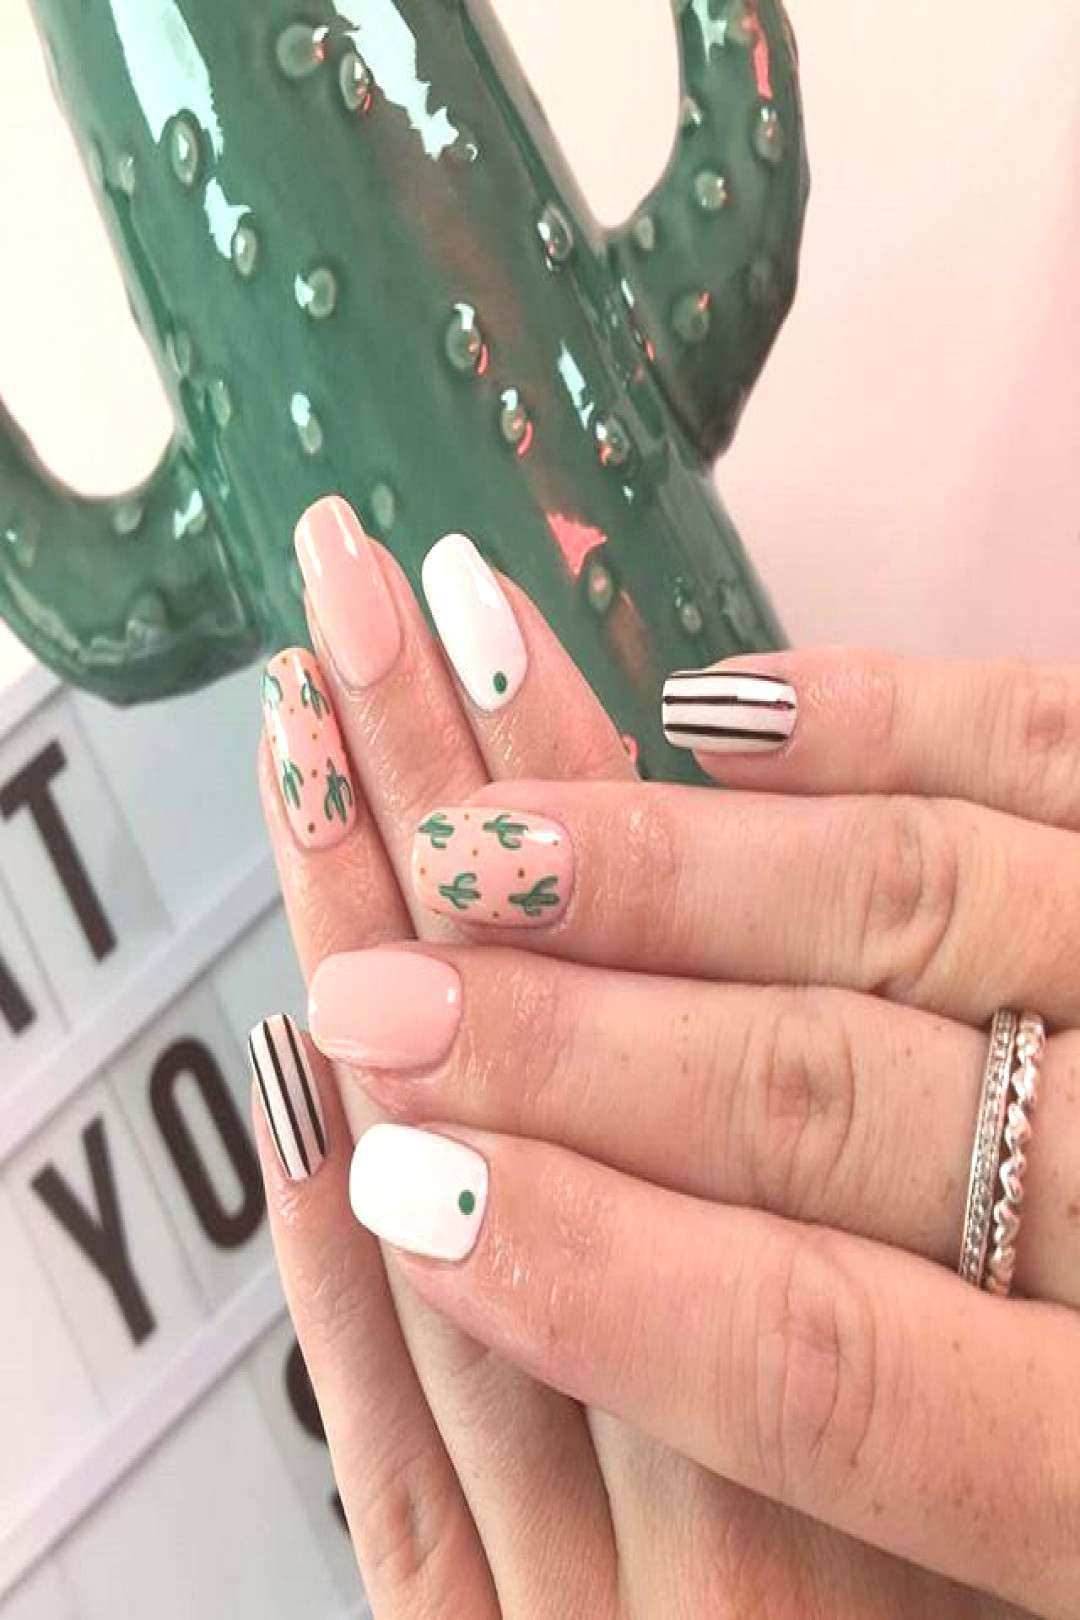 Cute lil' cactus accents by our nail art queen and gel polish expert sweet is this set? Desert drea